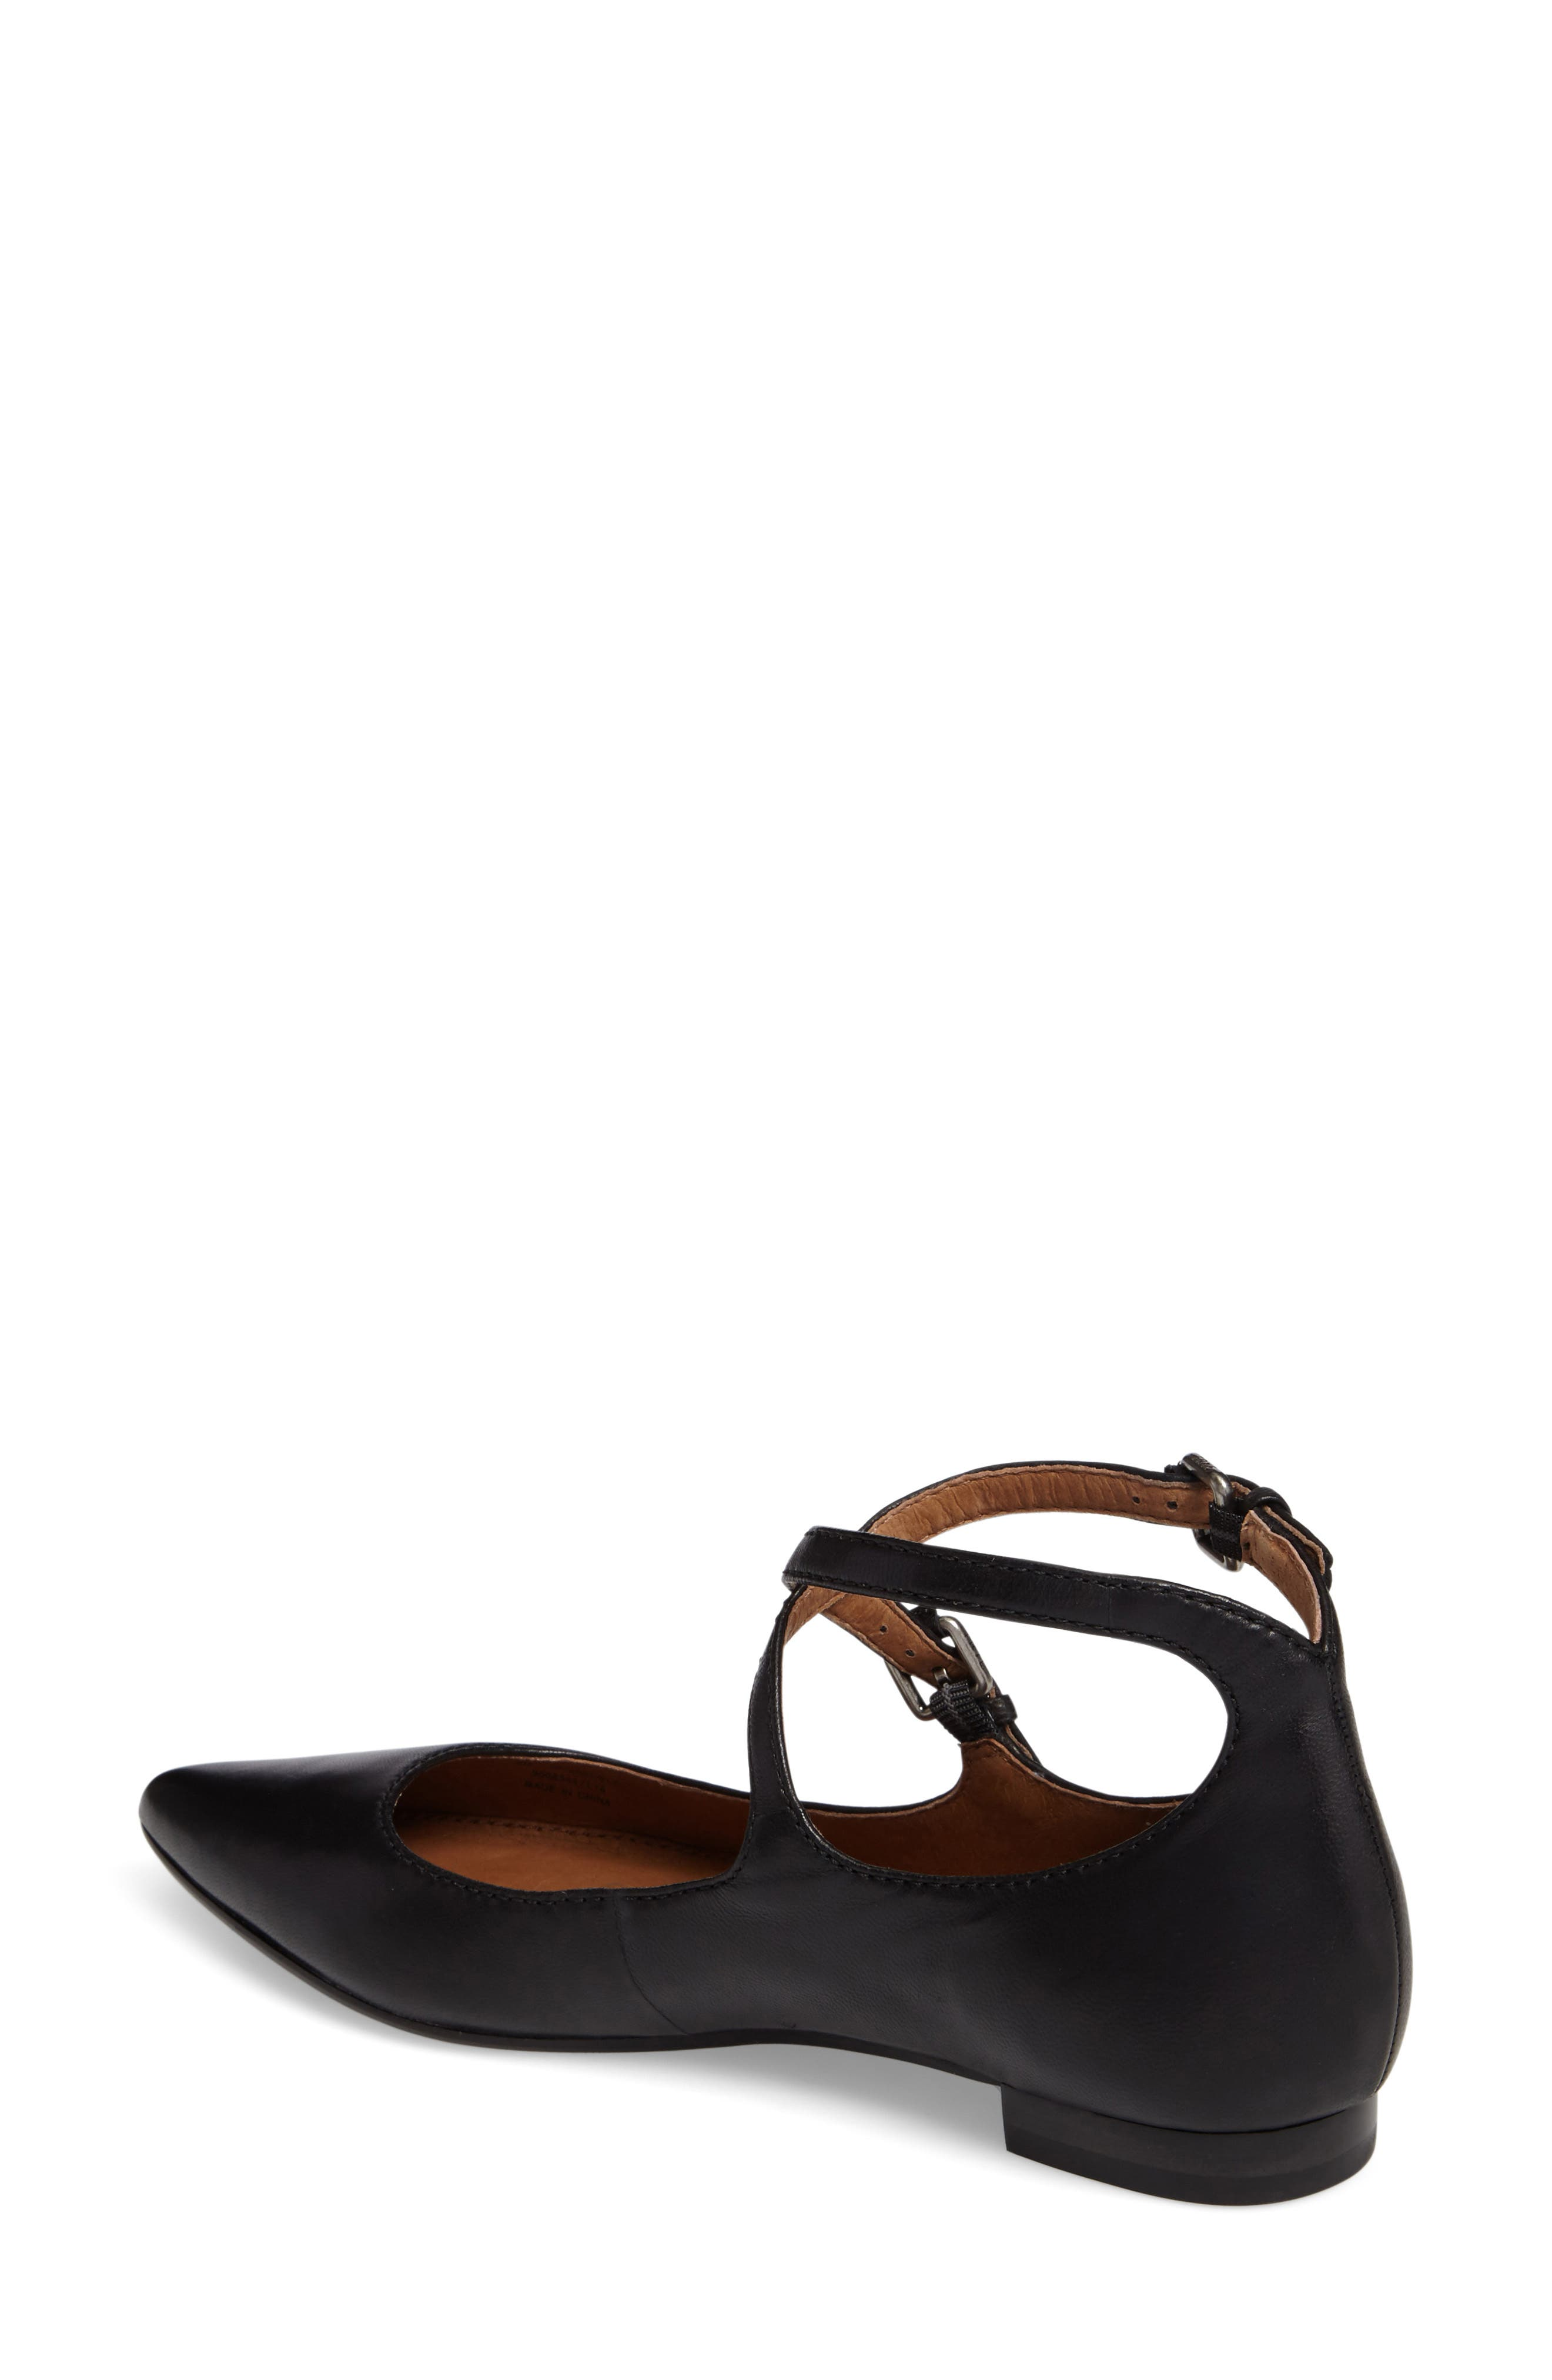 Sienna Cross Ballet Flat,                             Alternate thumbnail 2, color,                             Black